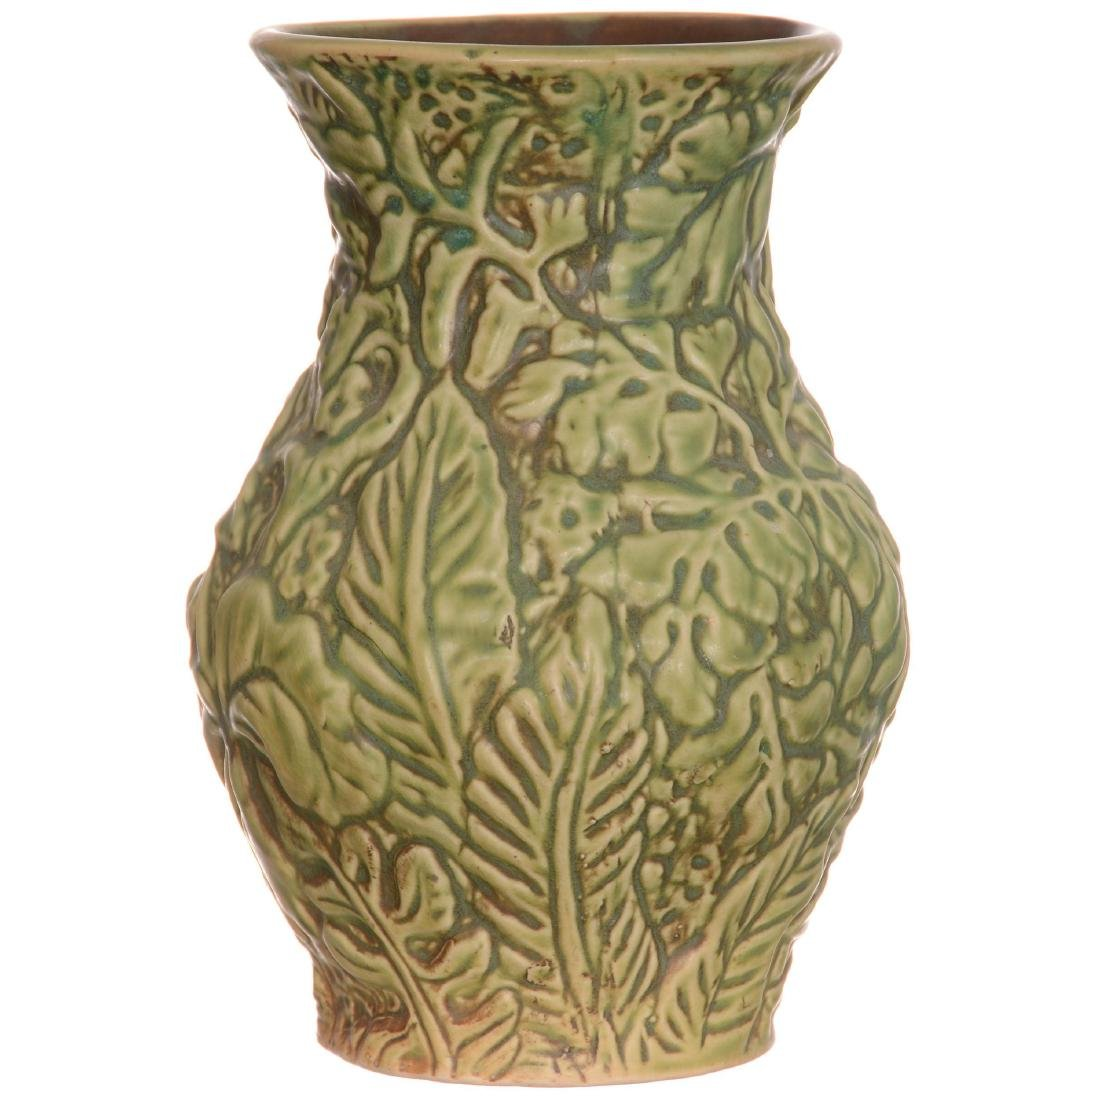 Weller Art Pottery Vase